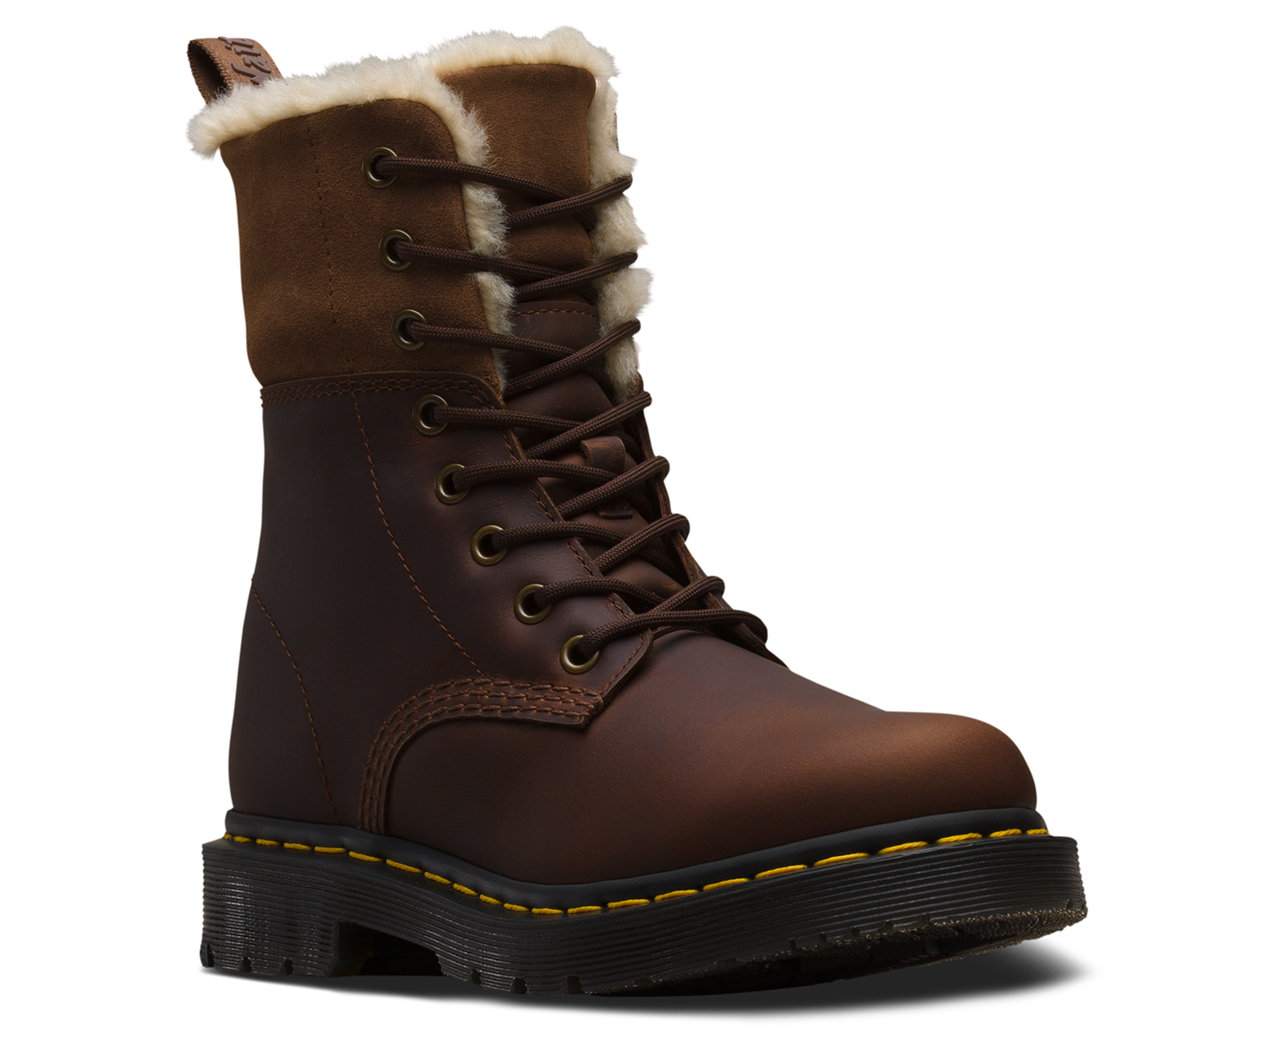 KOLBERT Wintergrip 1460 DM'S ShoesDr WINTERGRIPDM's Bootsamp; 8OX0nwPk